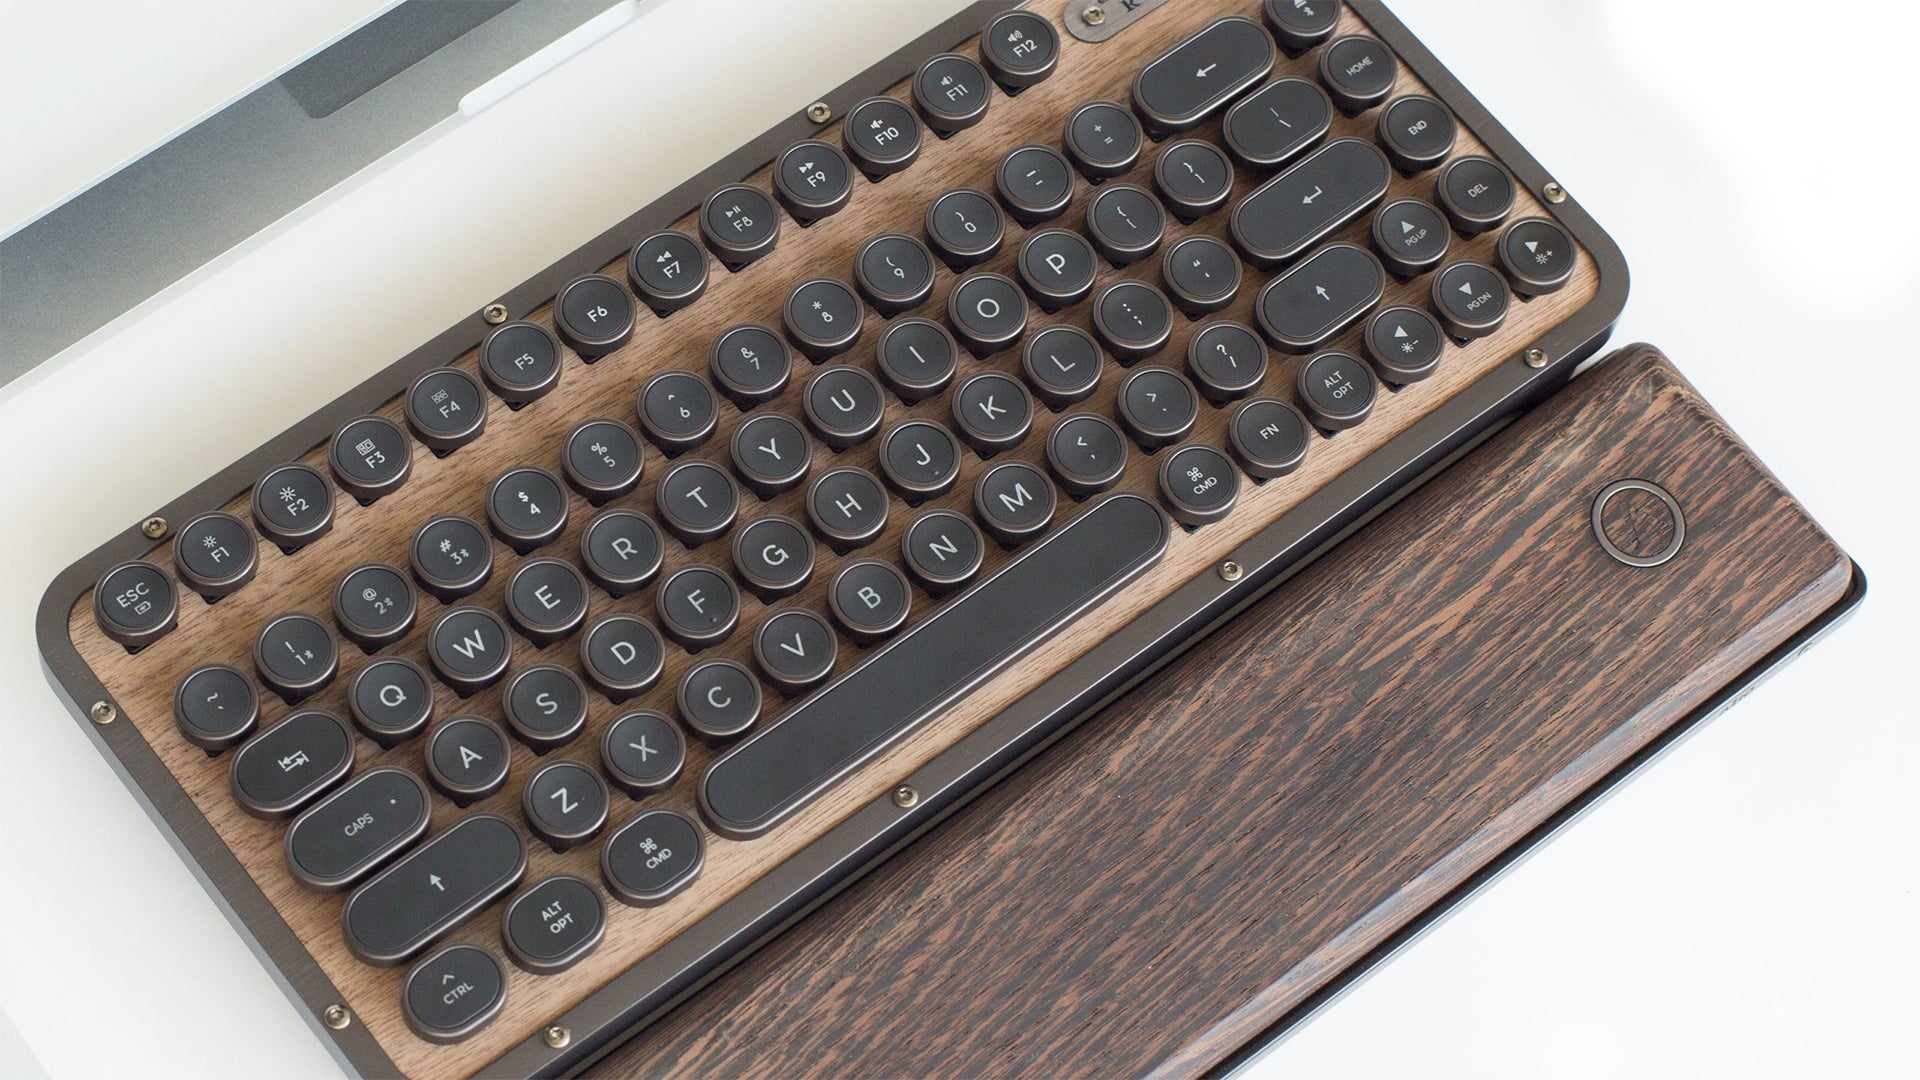 They Made A Compact Retro Keyboard Out Of Wood